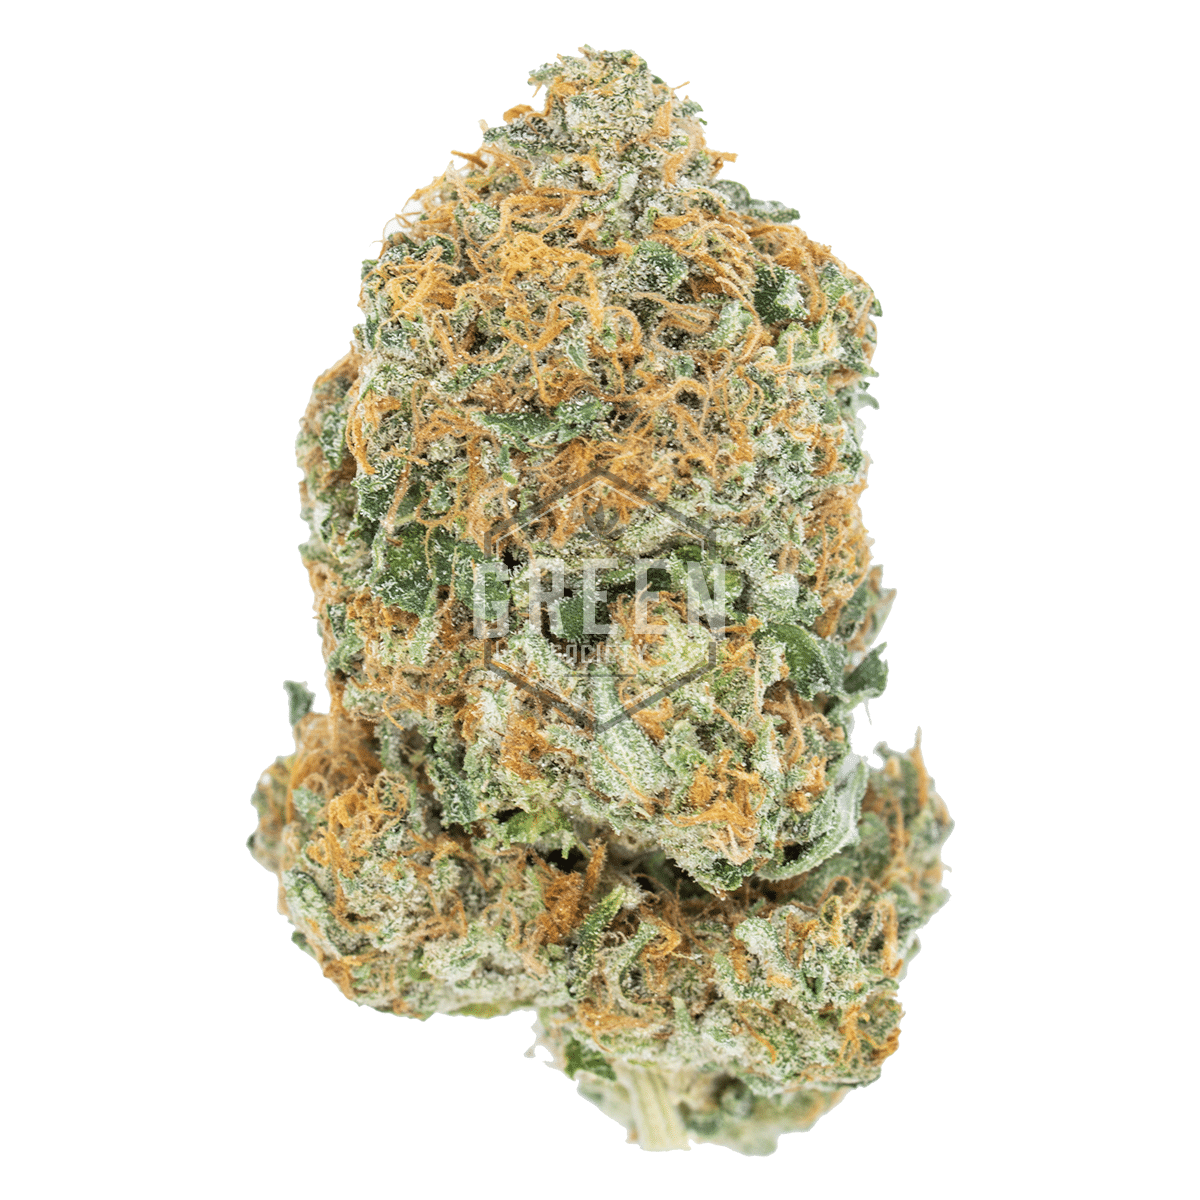 Bubba OG by Green Society - Image © 2018 Green Society. All Rights Reserved.